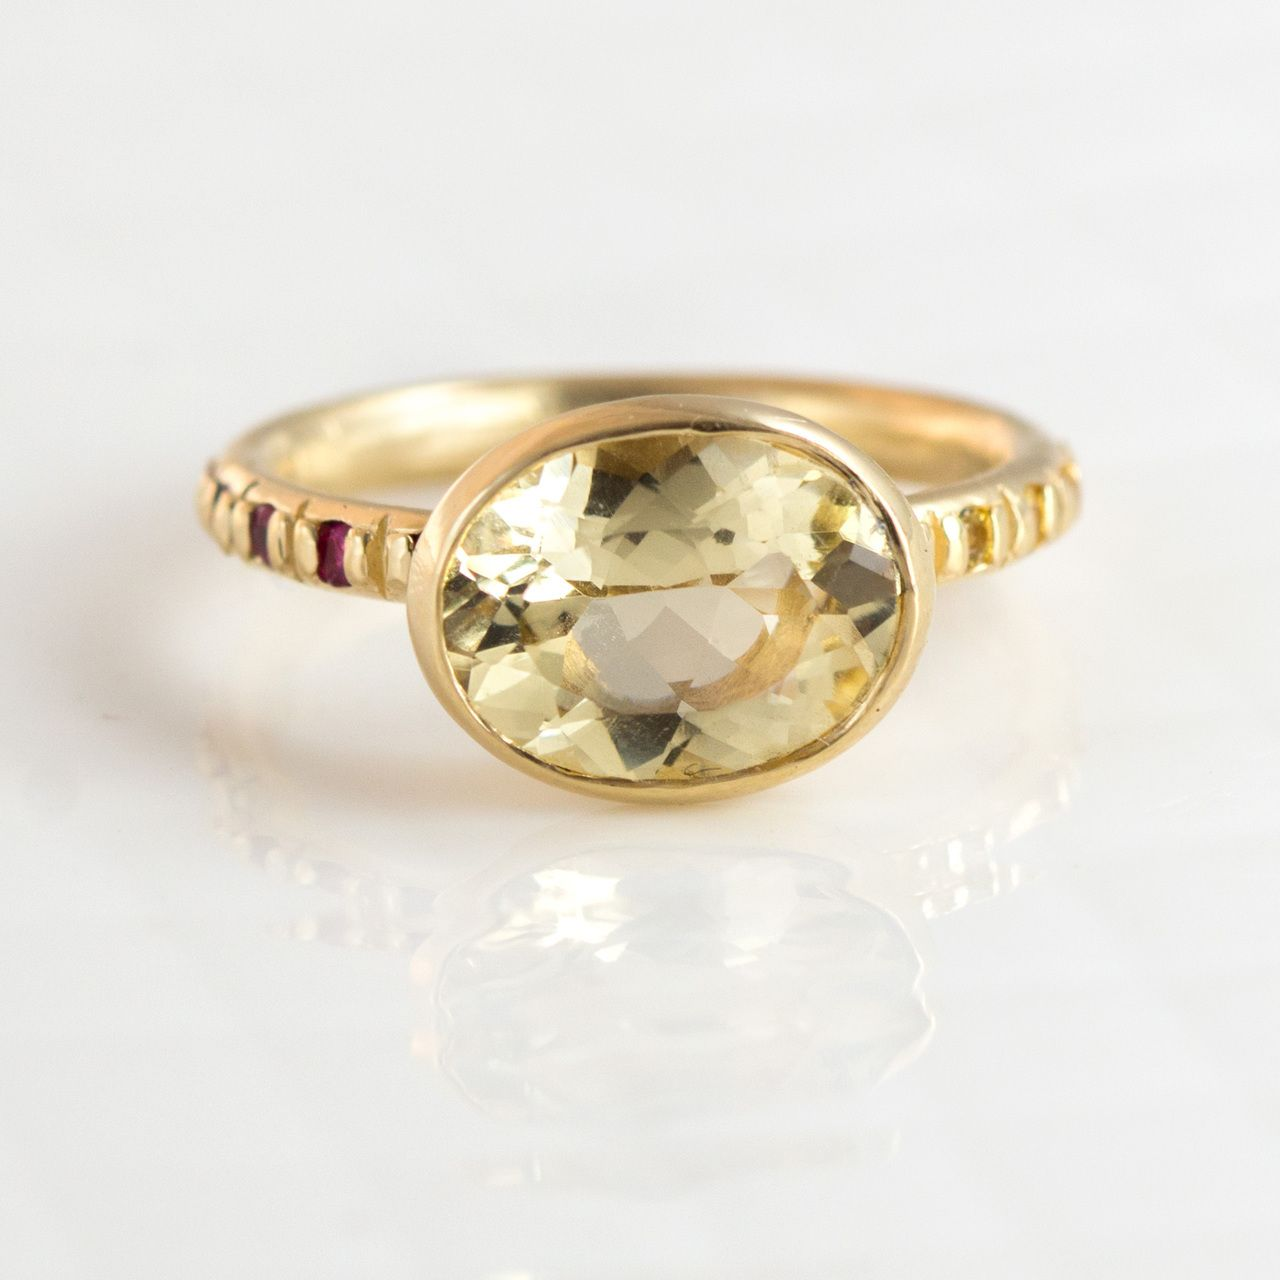 Yellow Beryl Oval Cocktail Ring in 14k Gold by Melanie Casey Jewelry